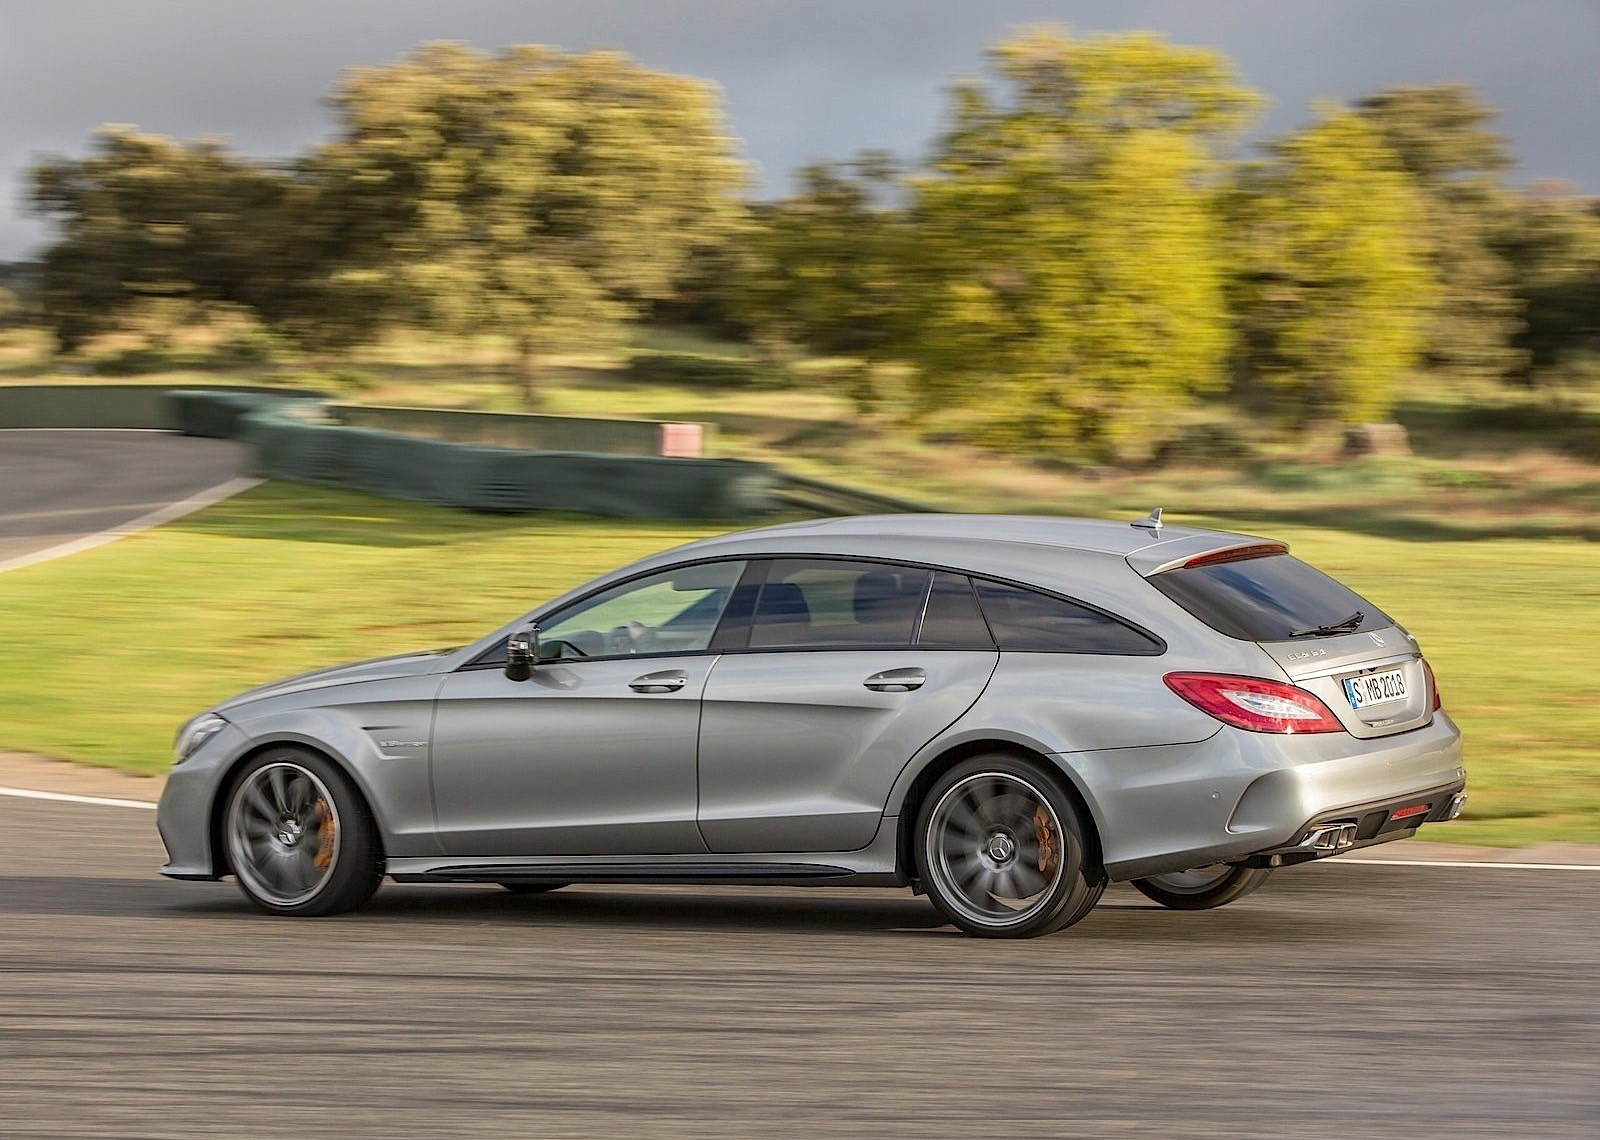 Mercedes benz cls shooting brake amg x218 specs 2014 for Mercedes benz amg cls